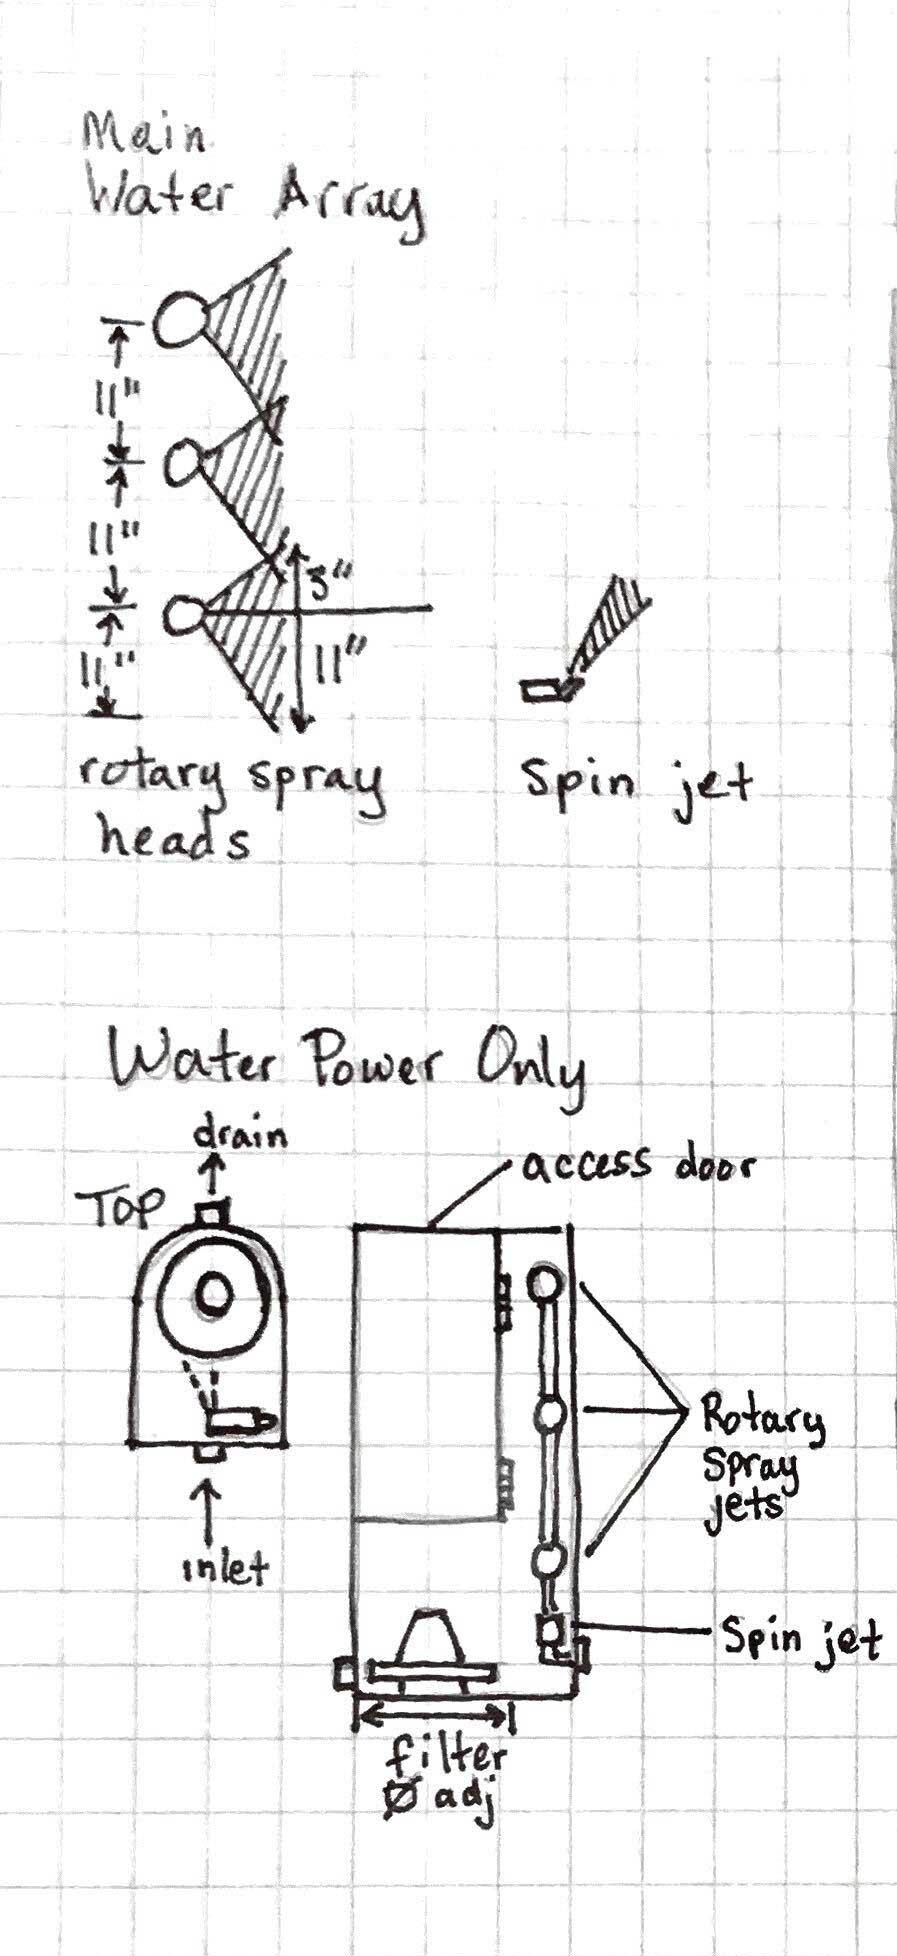 An early sketch drawing showing the PowerJet array idea for the CleanSweep product